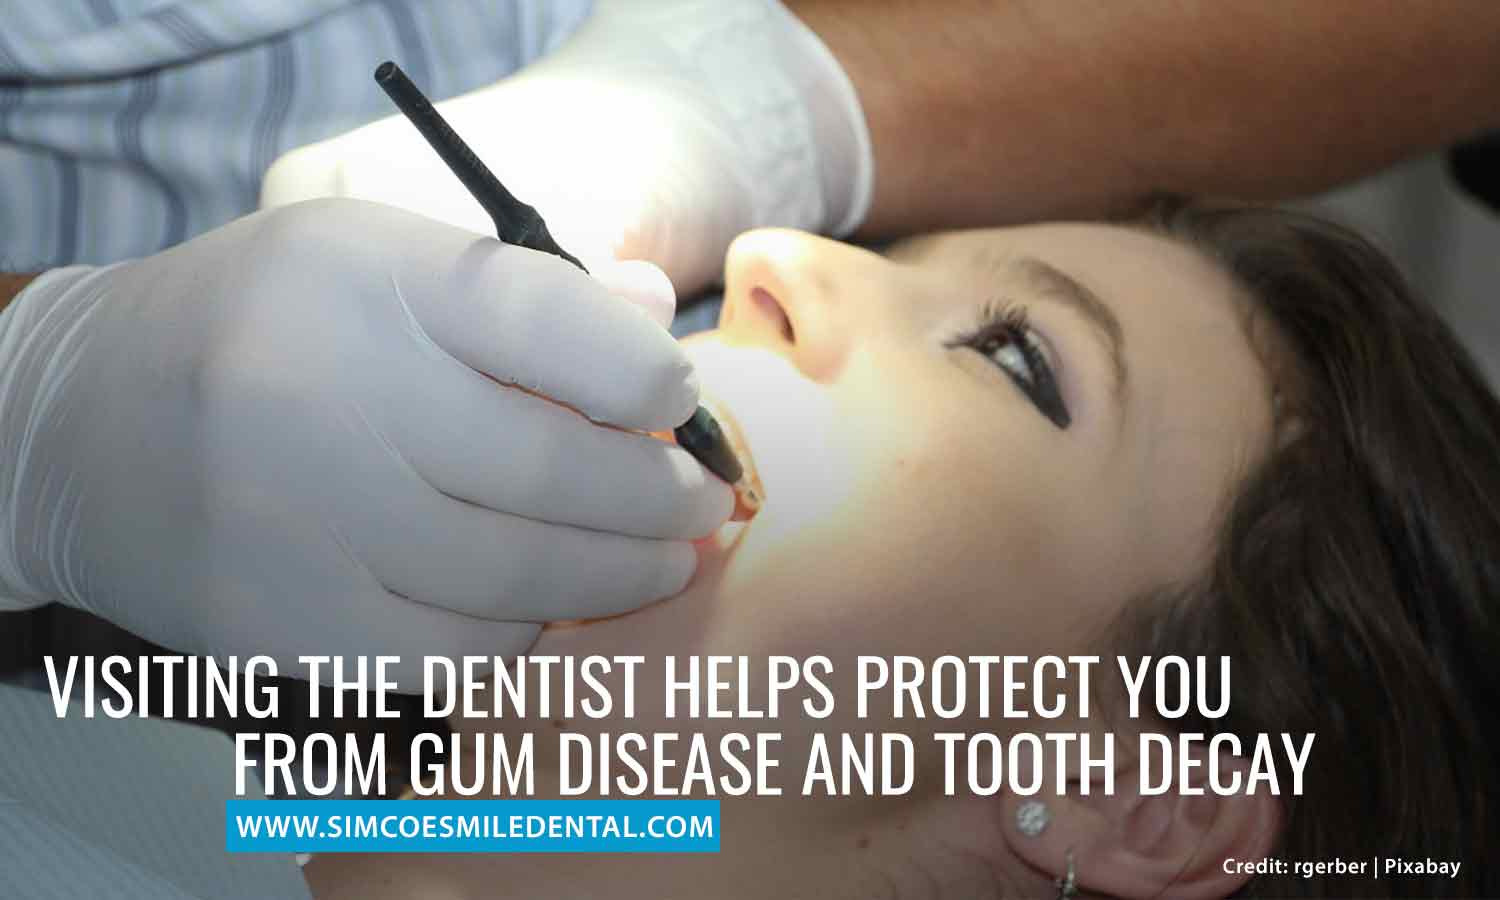 Visiting-the-dentist-helps-protect-you-from-gum-disease-and-tooth-decay How Poor Oral Hygiene Affects Overall Health